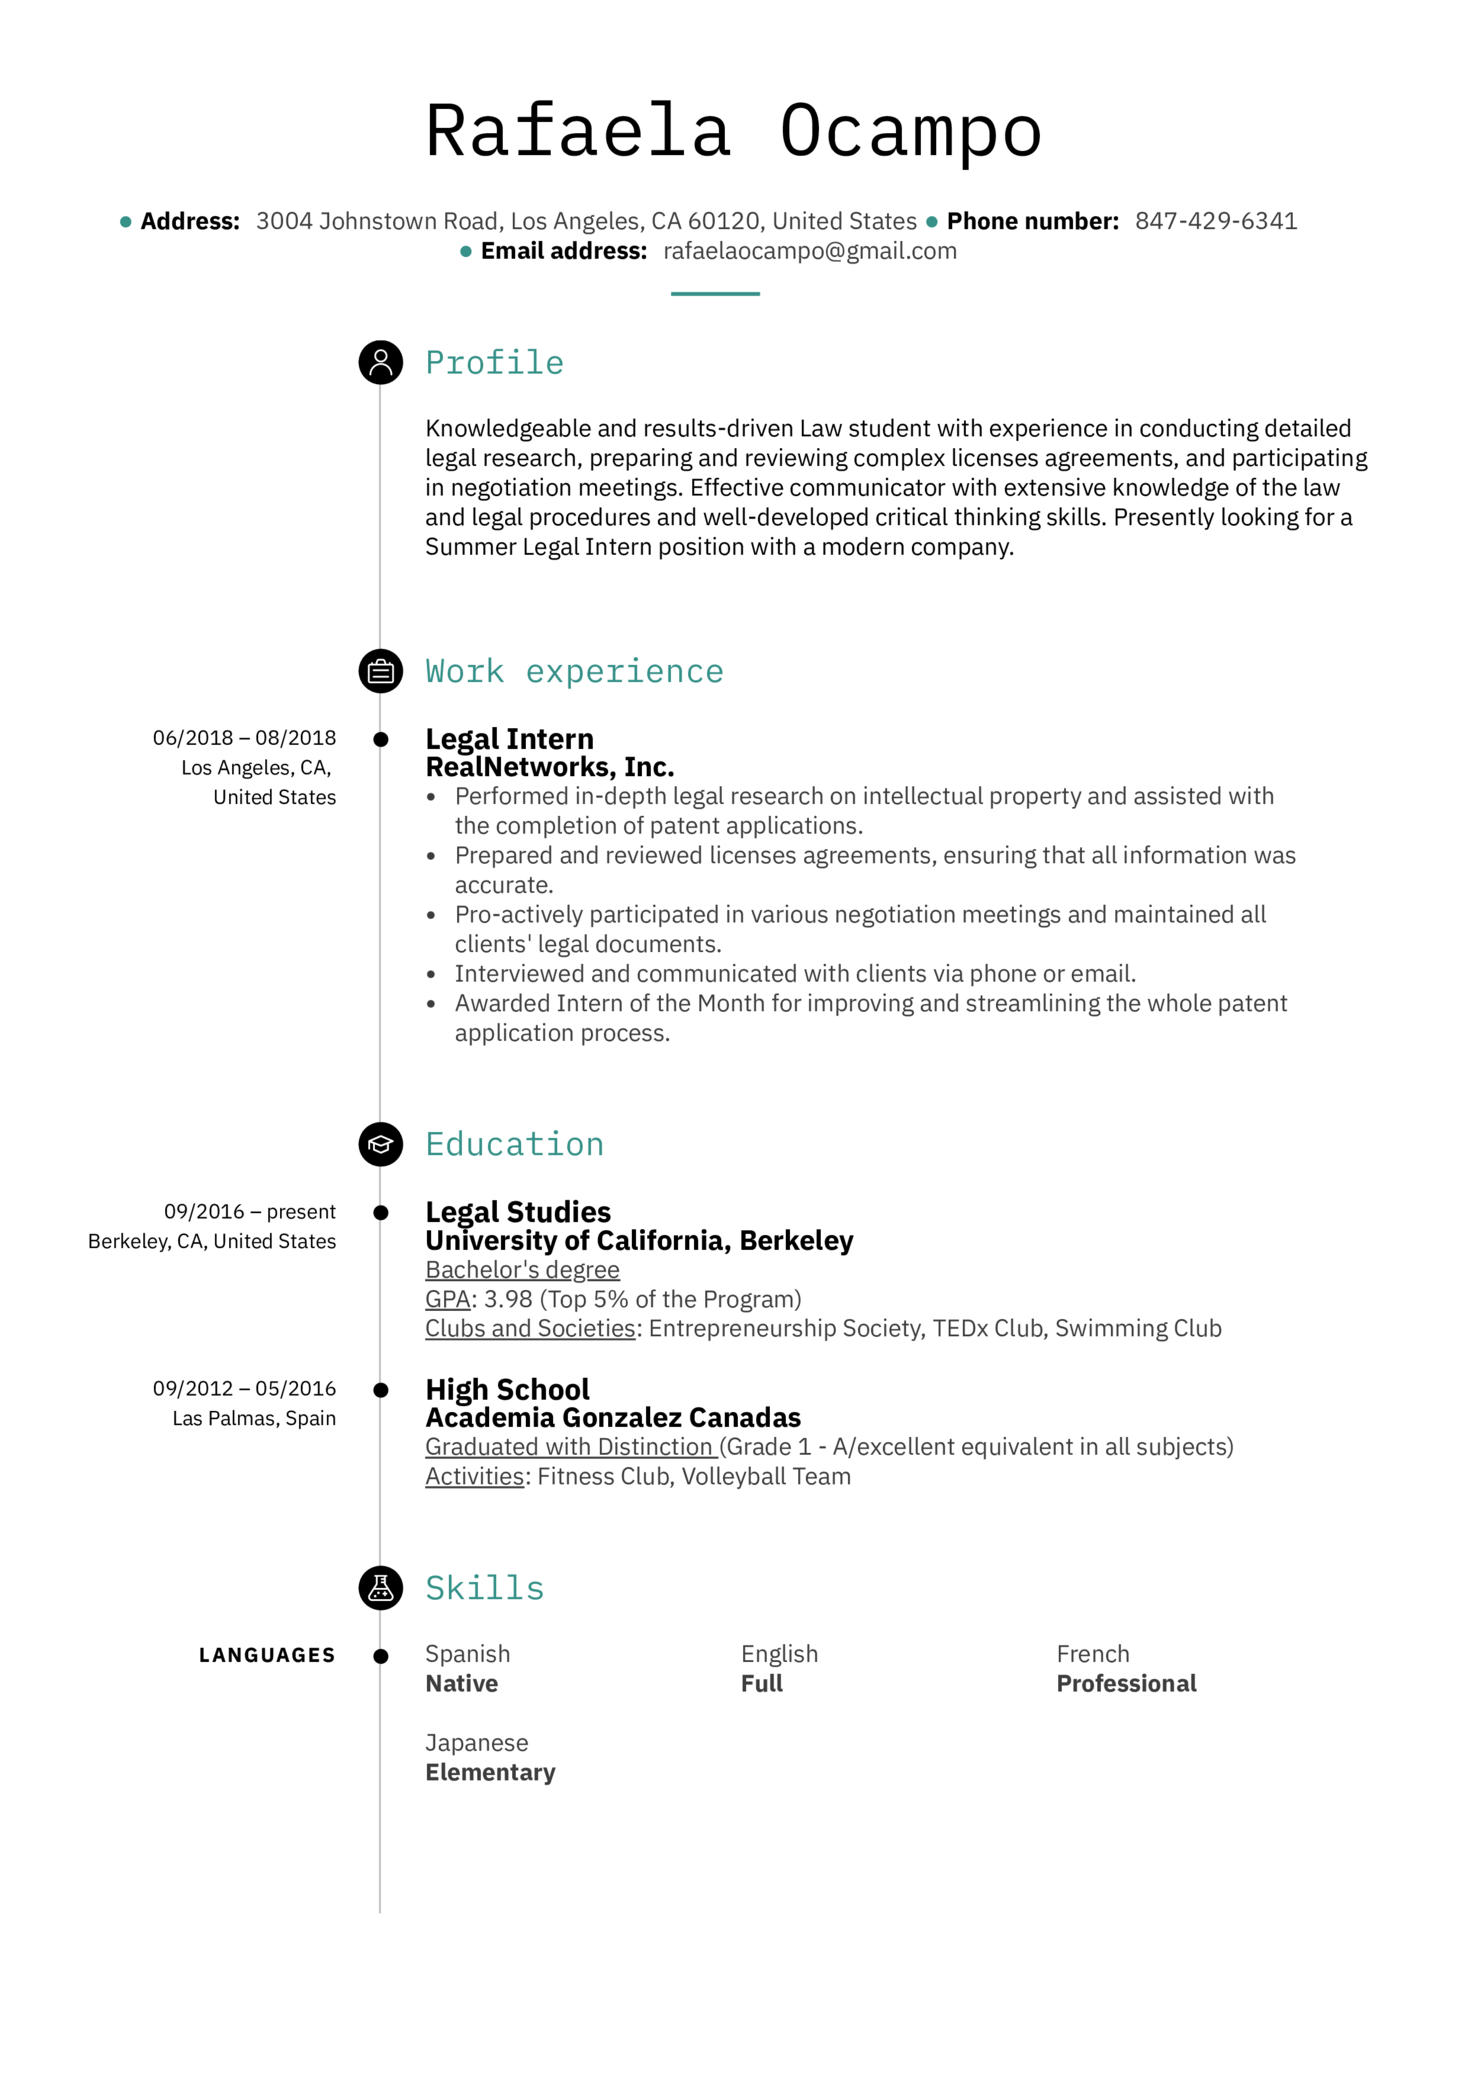 Legal Intern Resume Example (parte 1)